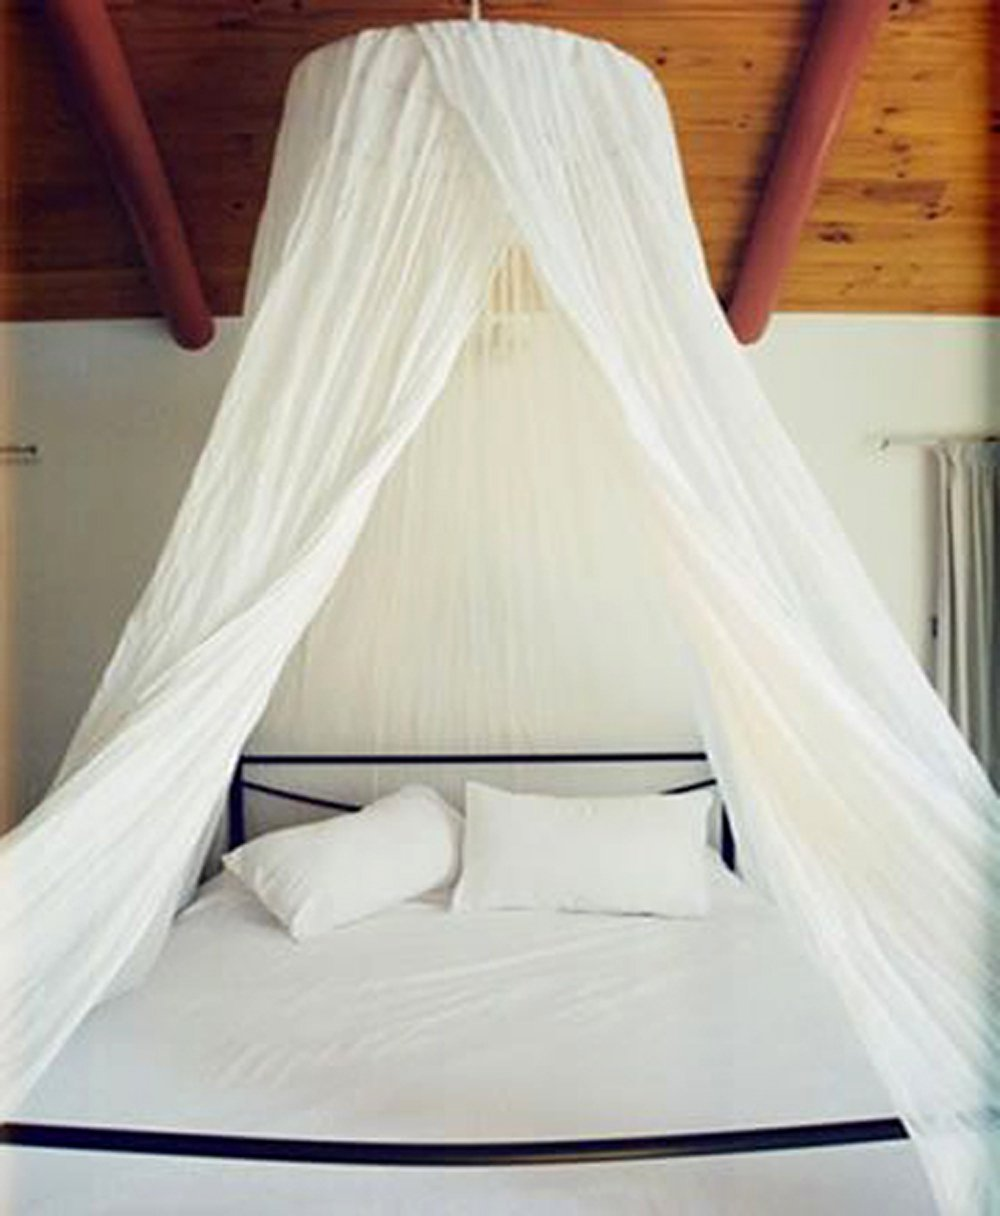 Delicieux Amazon.com: Dreamma Elegant White Round Bed Canopy Mosquito Net: Kitchen U0026  Dining